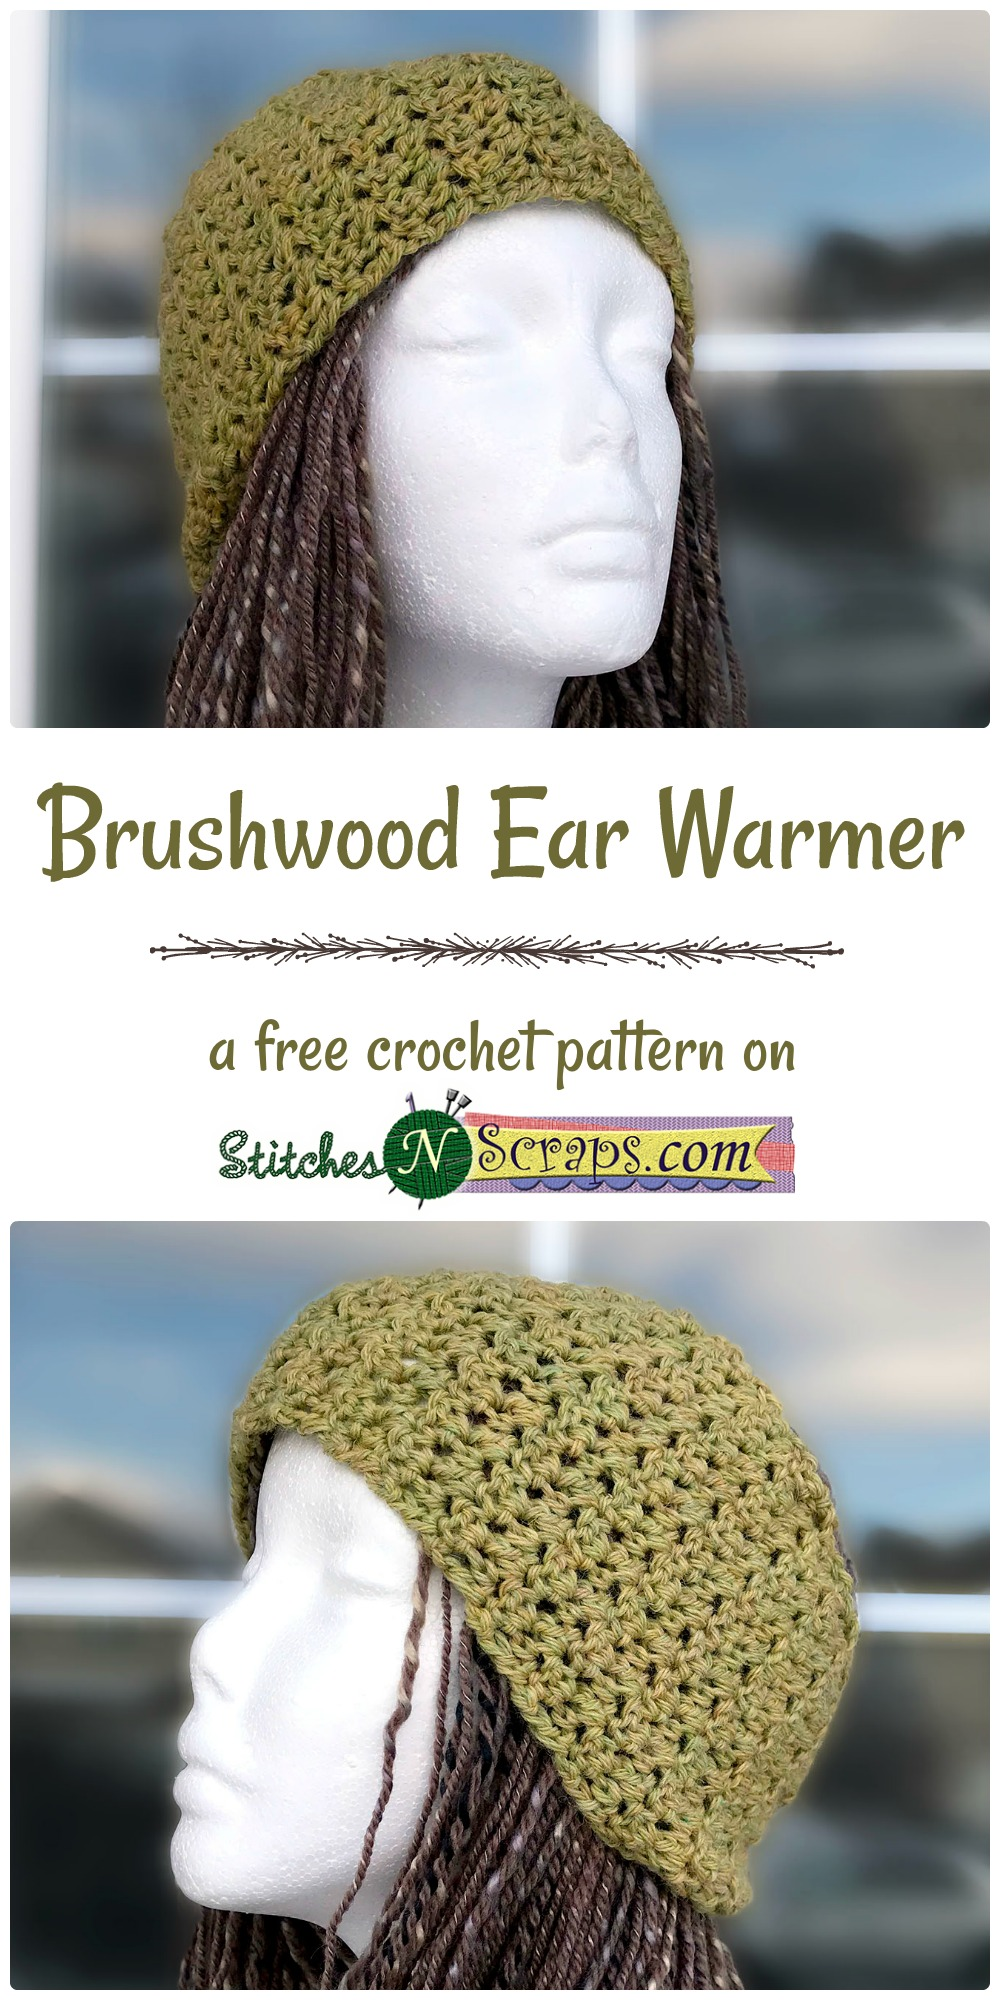 Free Pattern - Brushwood Ear Warmer - Stitches n Scraps